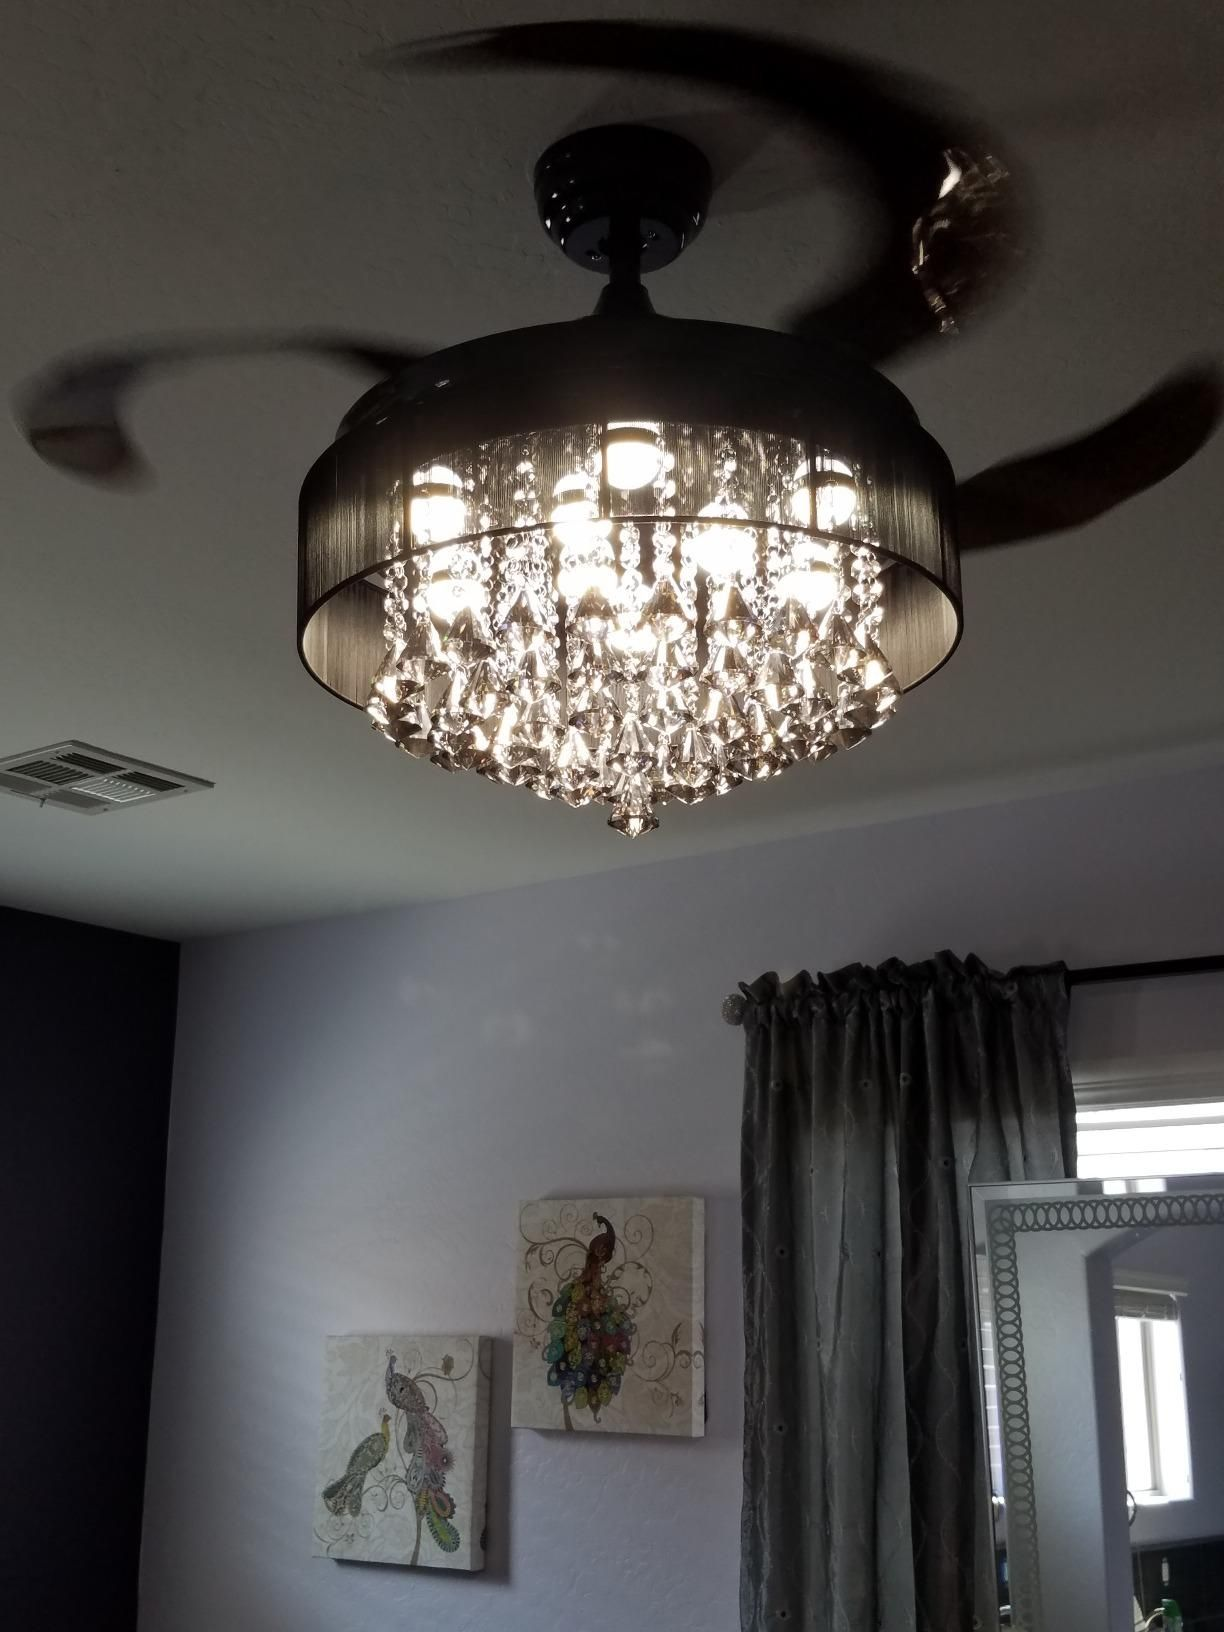 46 Broxburne Modern Crystal Retractable Ceiling Fan With Led Lights And Remote Control Black Chandelier Fan Bedroom Ceiling Light Ceiling Fan Chandelier